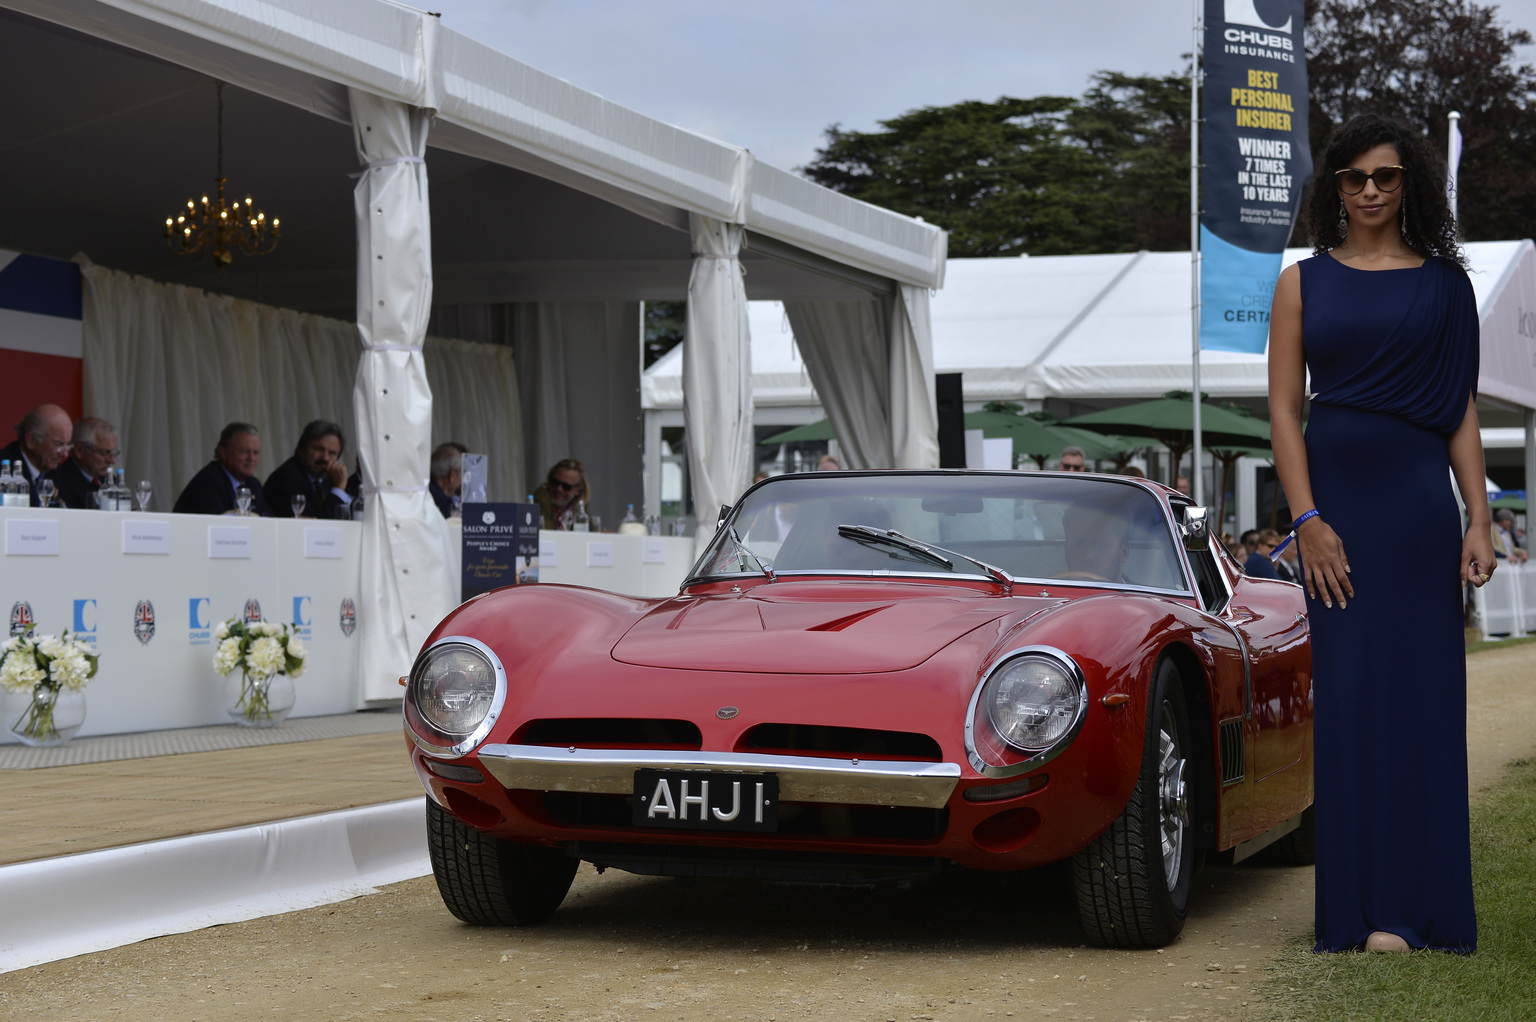 2015 Salon Priv Supercar Show and Chubb Insurance Concours d'Elgance